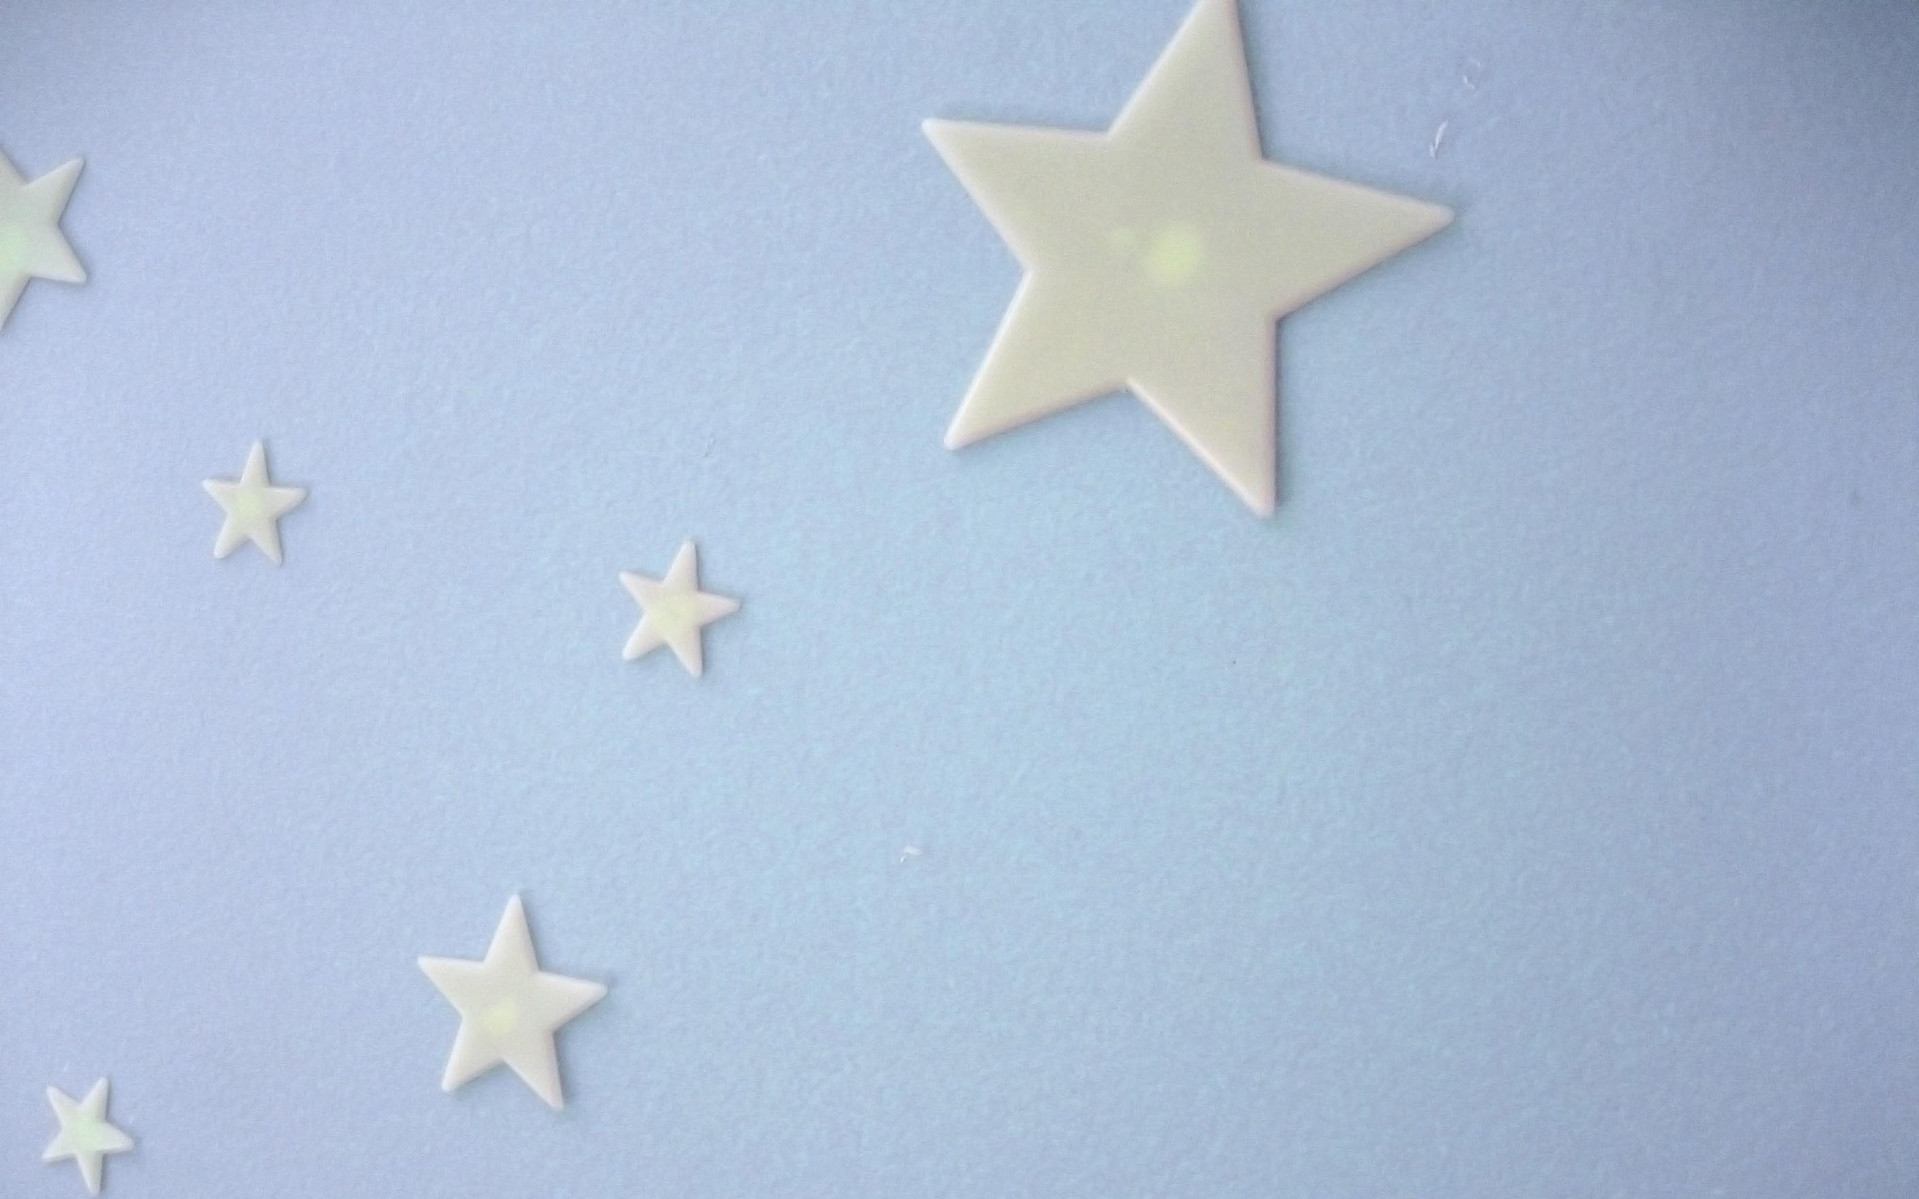 Image: A series of glow in the dark stars on a wall.